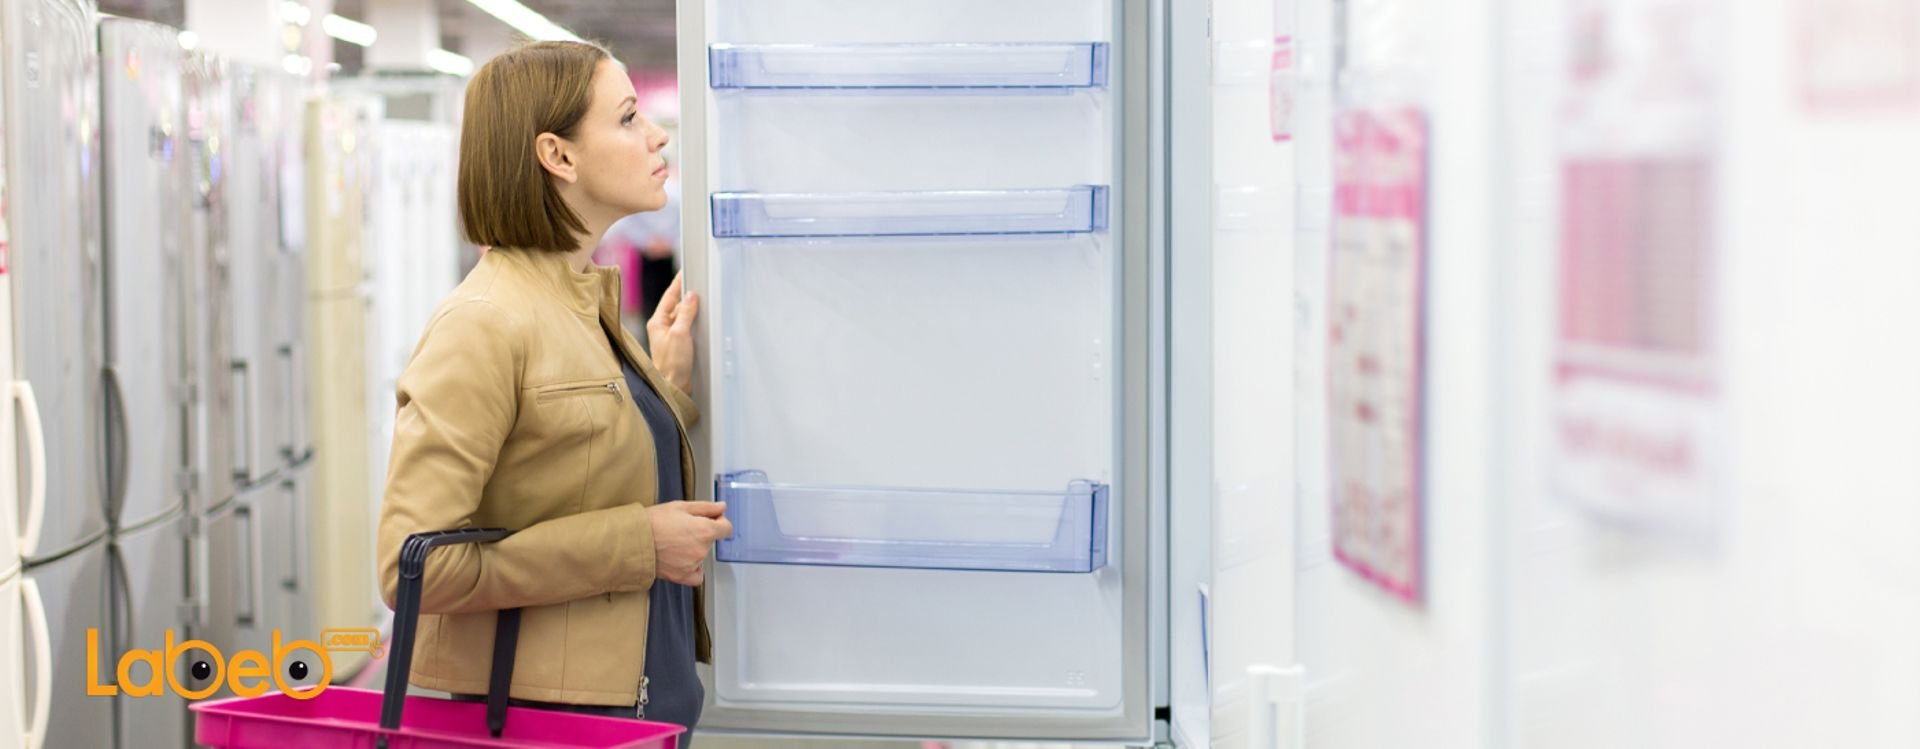 Refrigerators are one of the main home appliance, and due to the numerous types and styles, it is becoming harder to choose one.